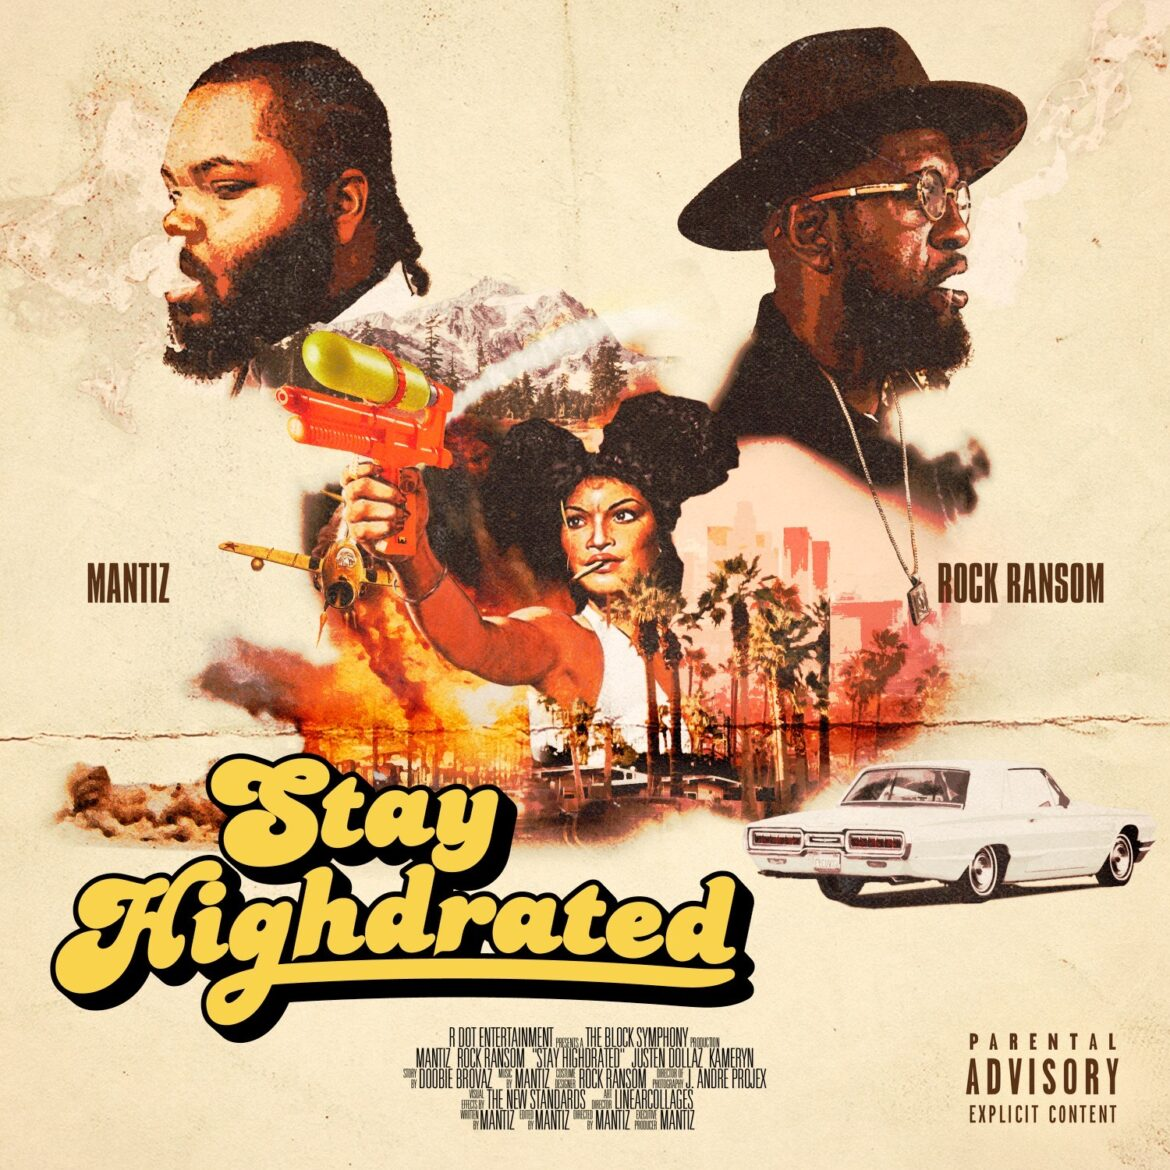 """Mantiz & Rock Ransom Team Up For Highly Anticipated """"Stay Highdrated"""" EP"""